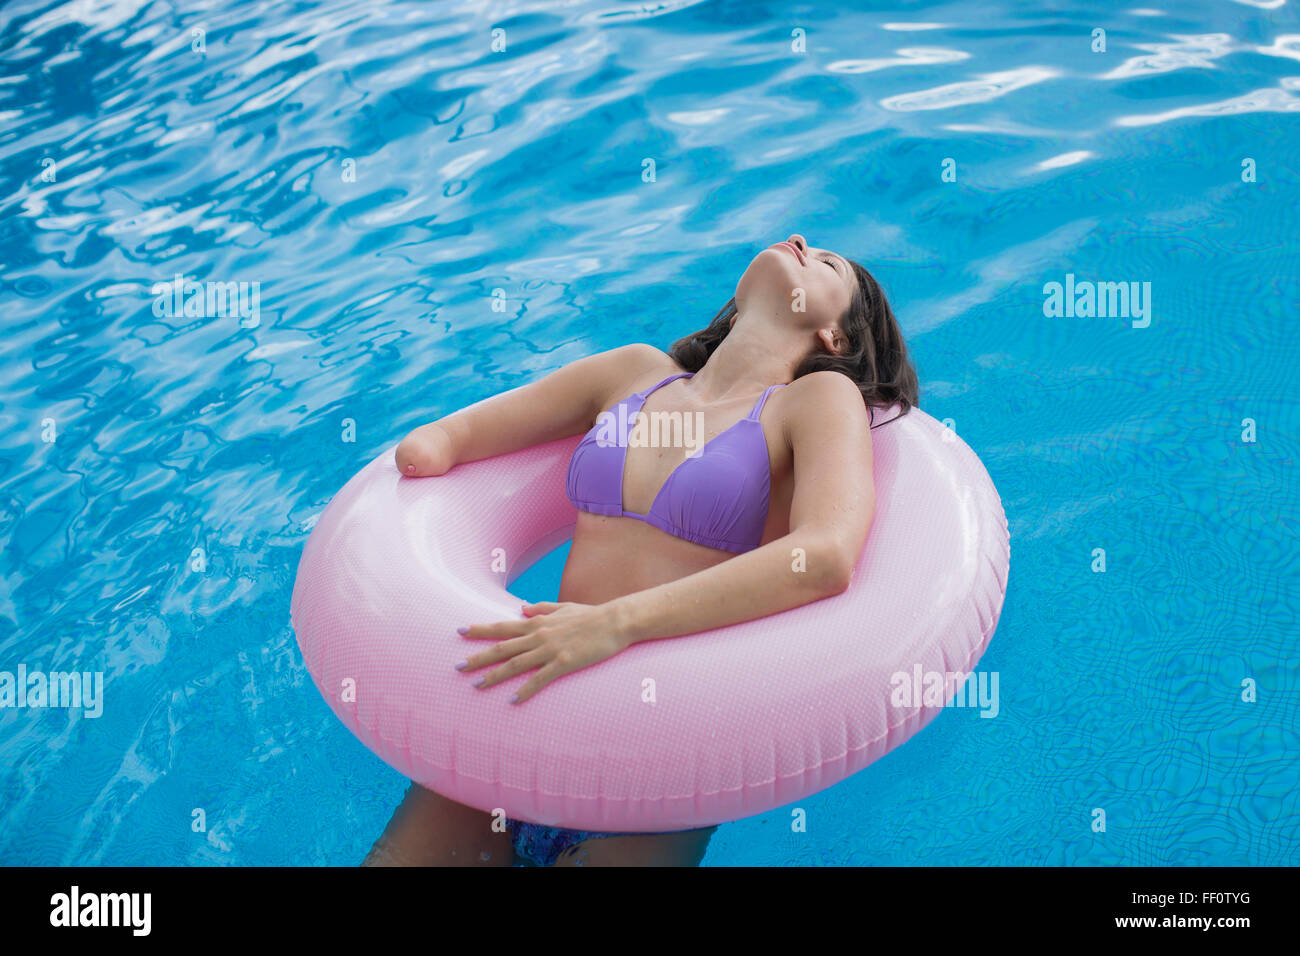 Mixed race amputee woman swimming in pool Stock Photo